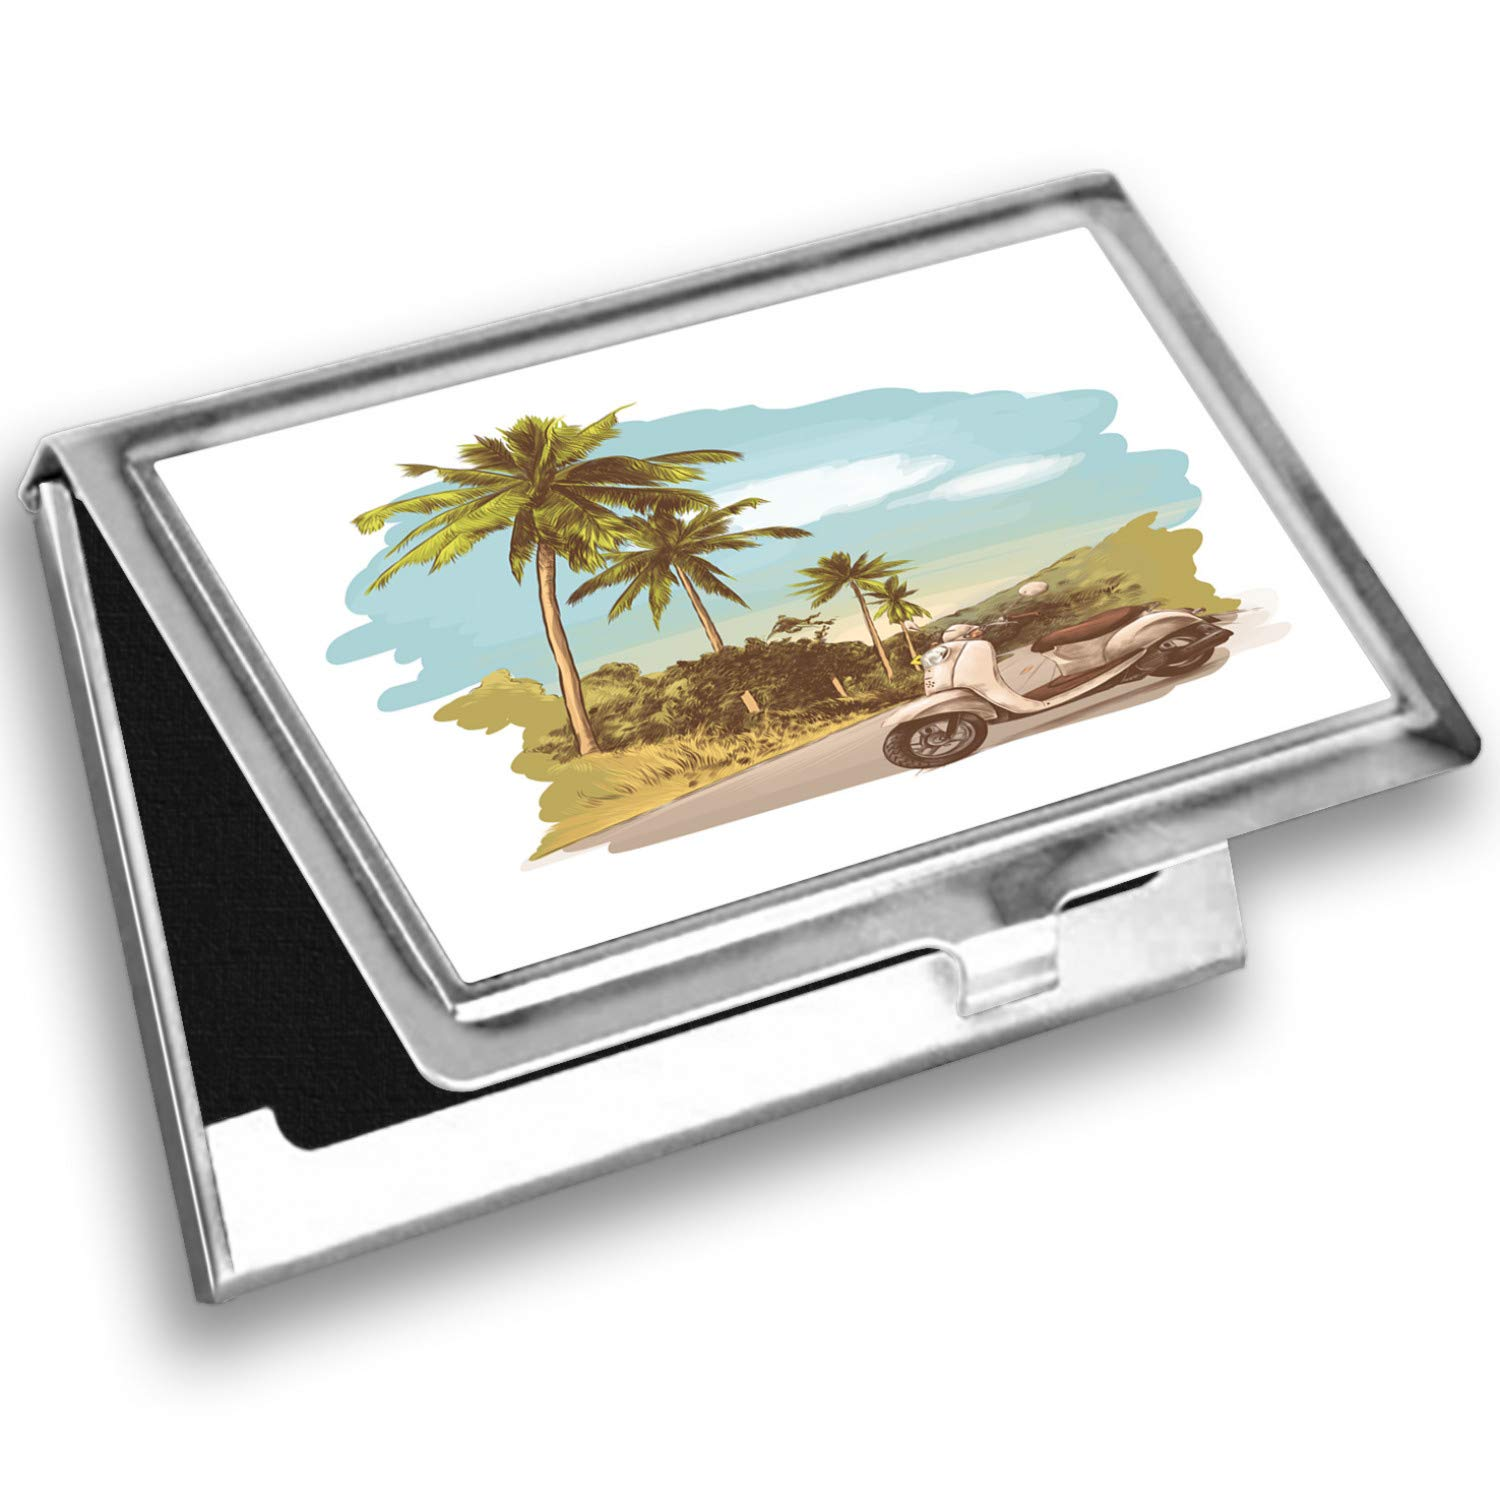 Ambesonne Retro Card Holder, Vintage Scooter in Jungle, Metal Card Wallet by Ambesonne